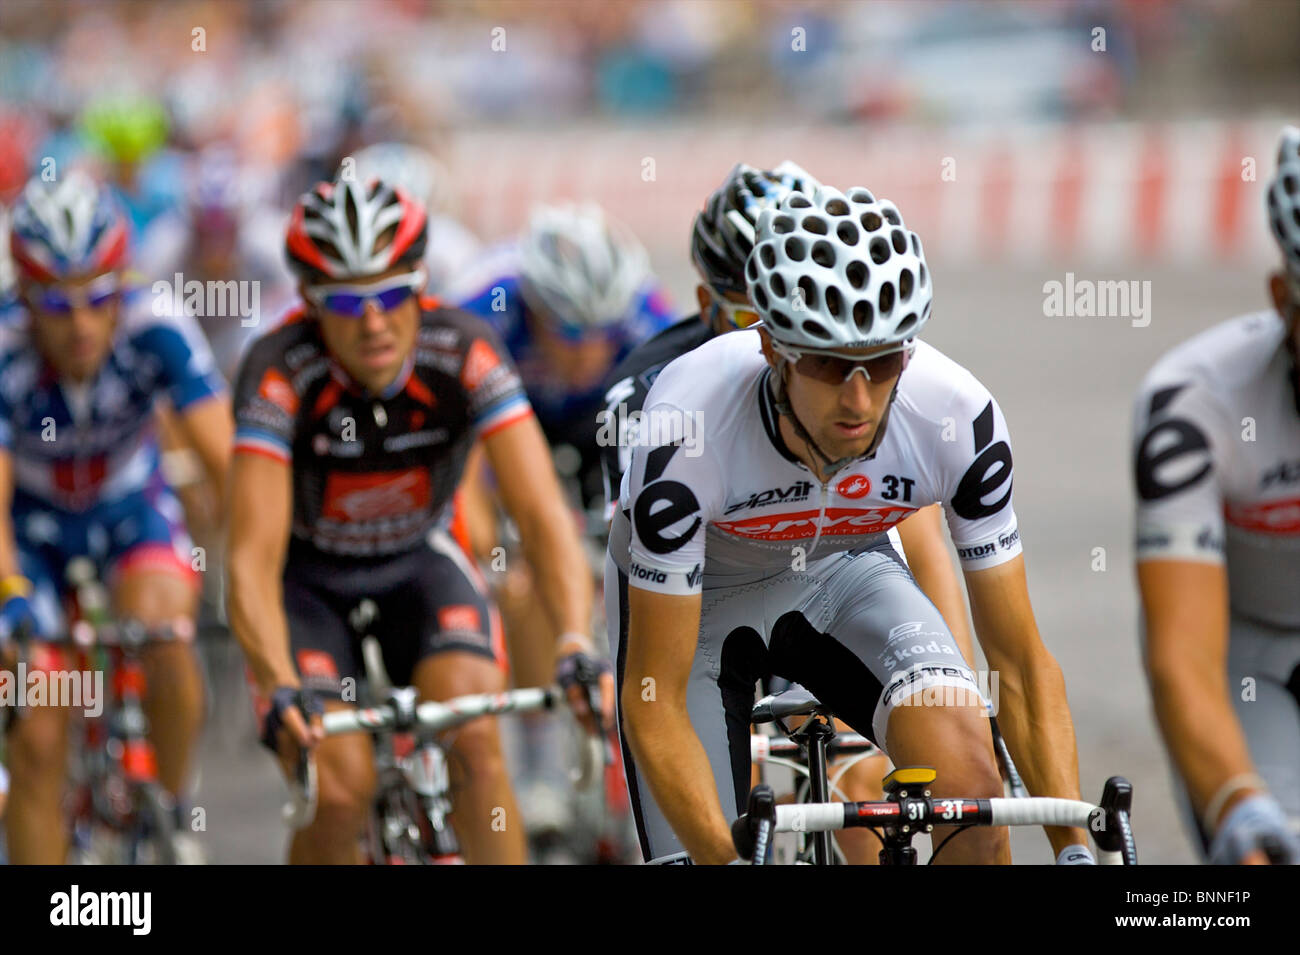 A professional cyclist from Cervelo Test Team rides amongst the peleton  during the 2010 Tour de 947f265e2